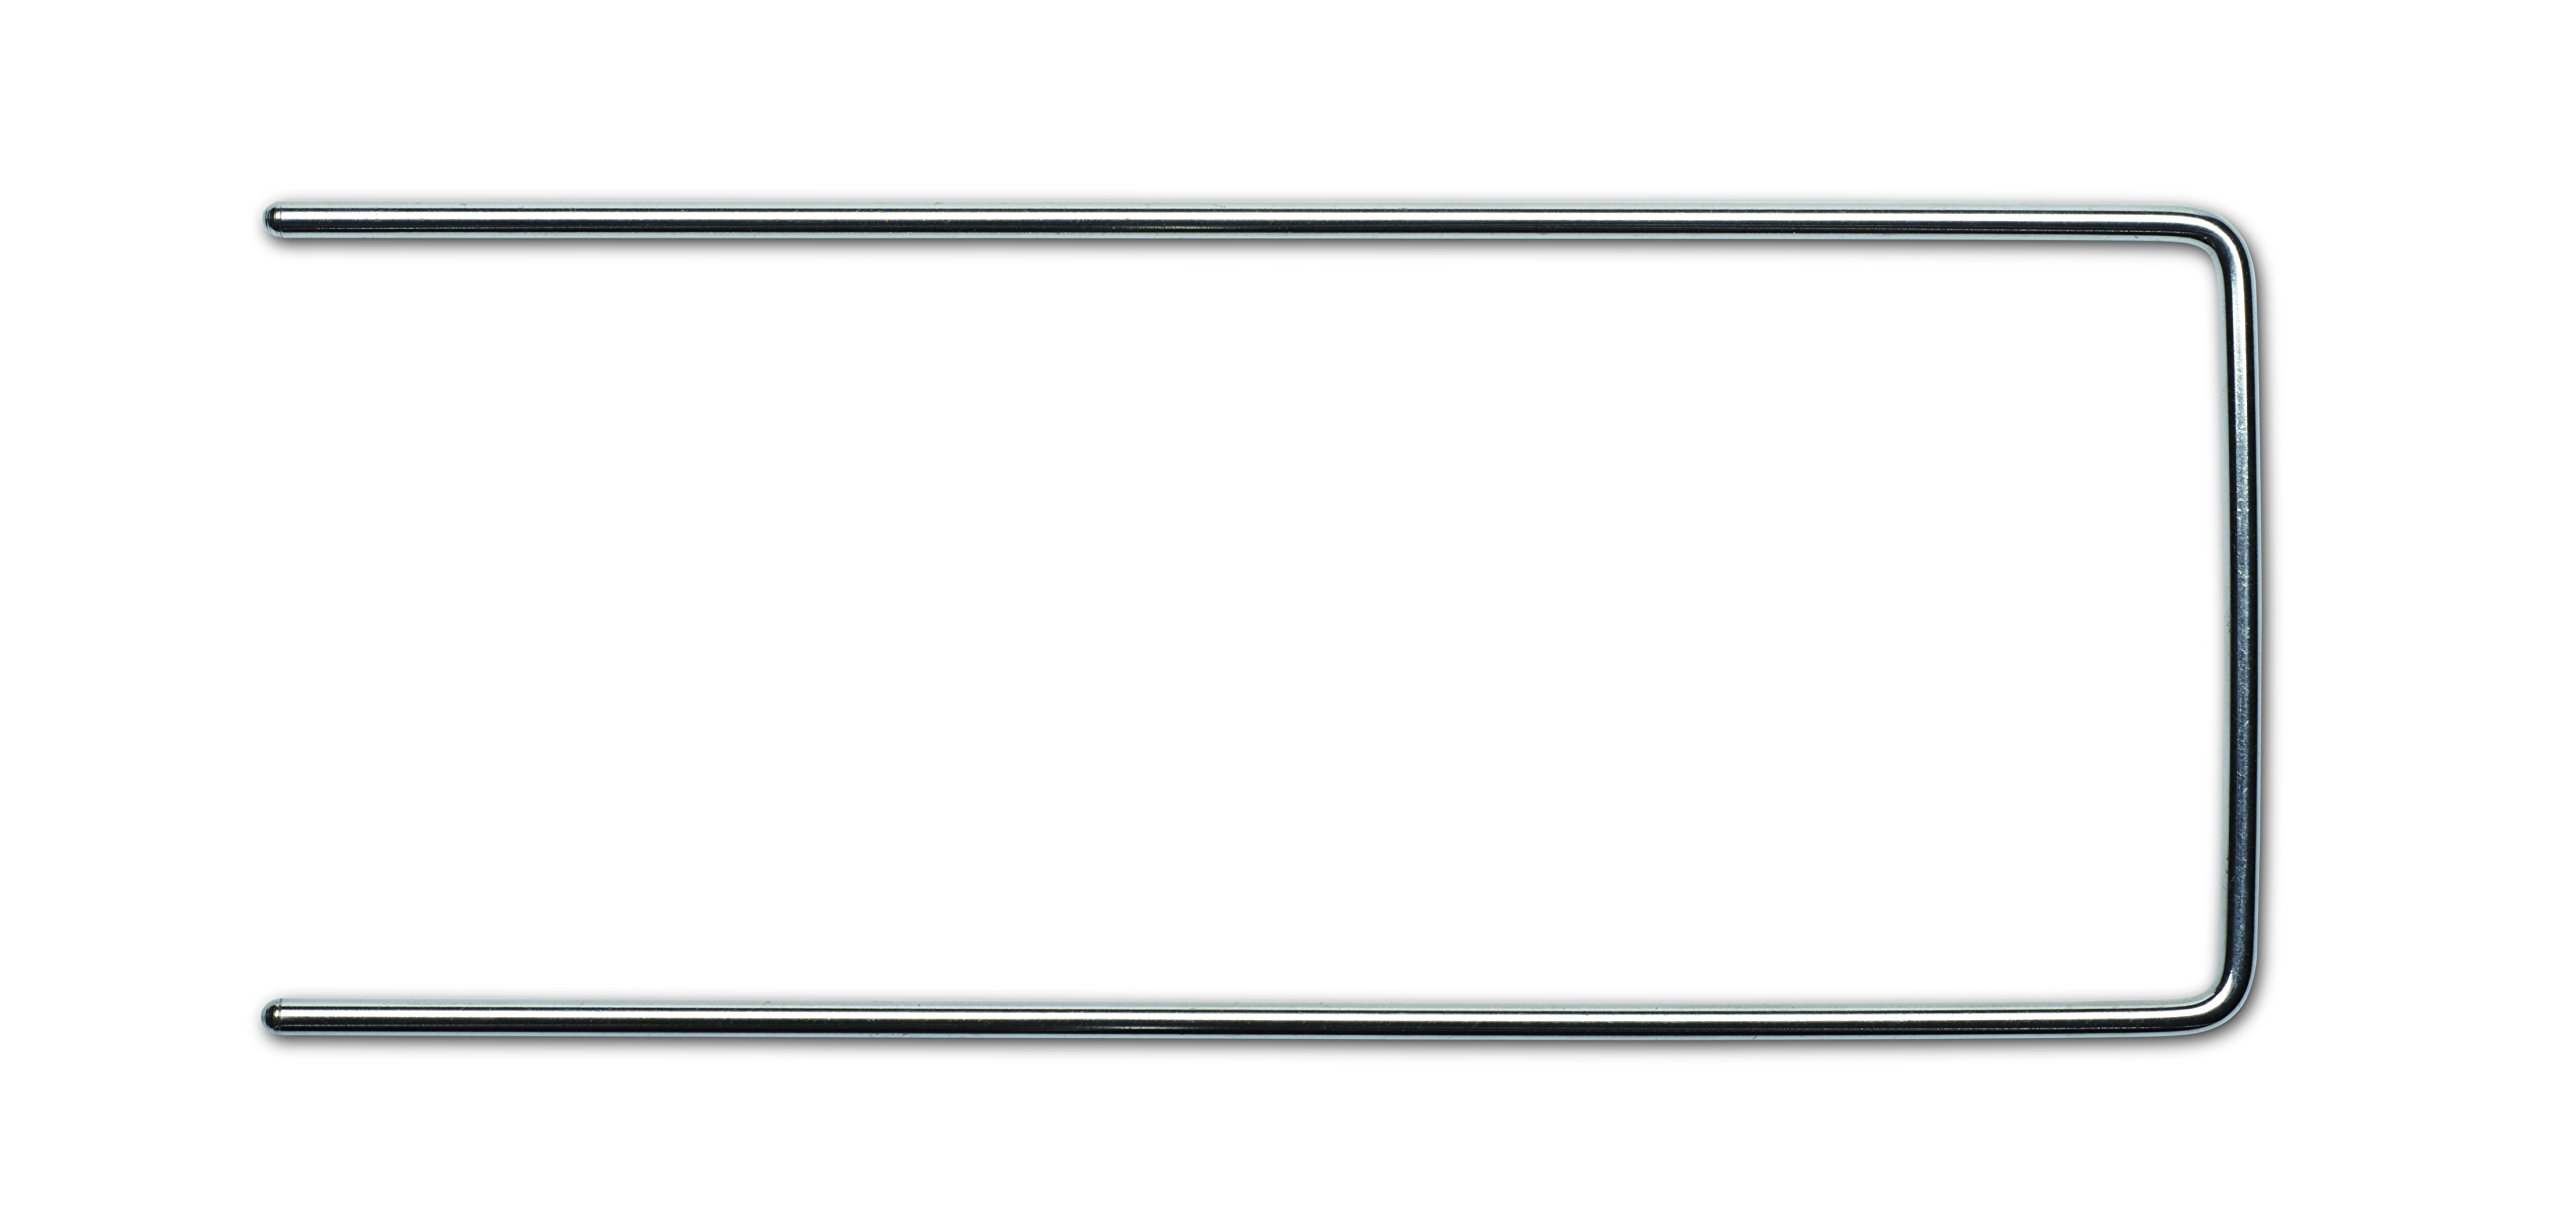 Key Surgical IS-55512 Instrument Stringer, U-Shaped, Stainless Steel, 12'' x 5.5''